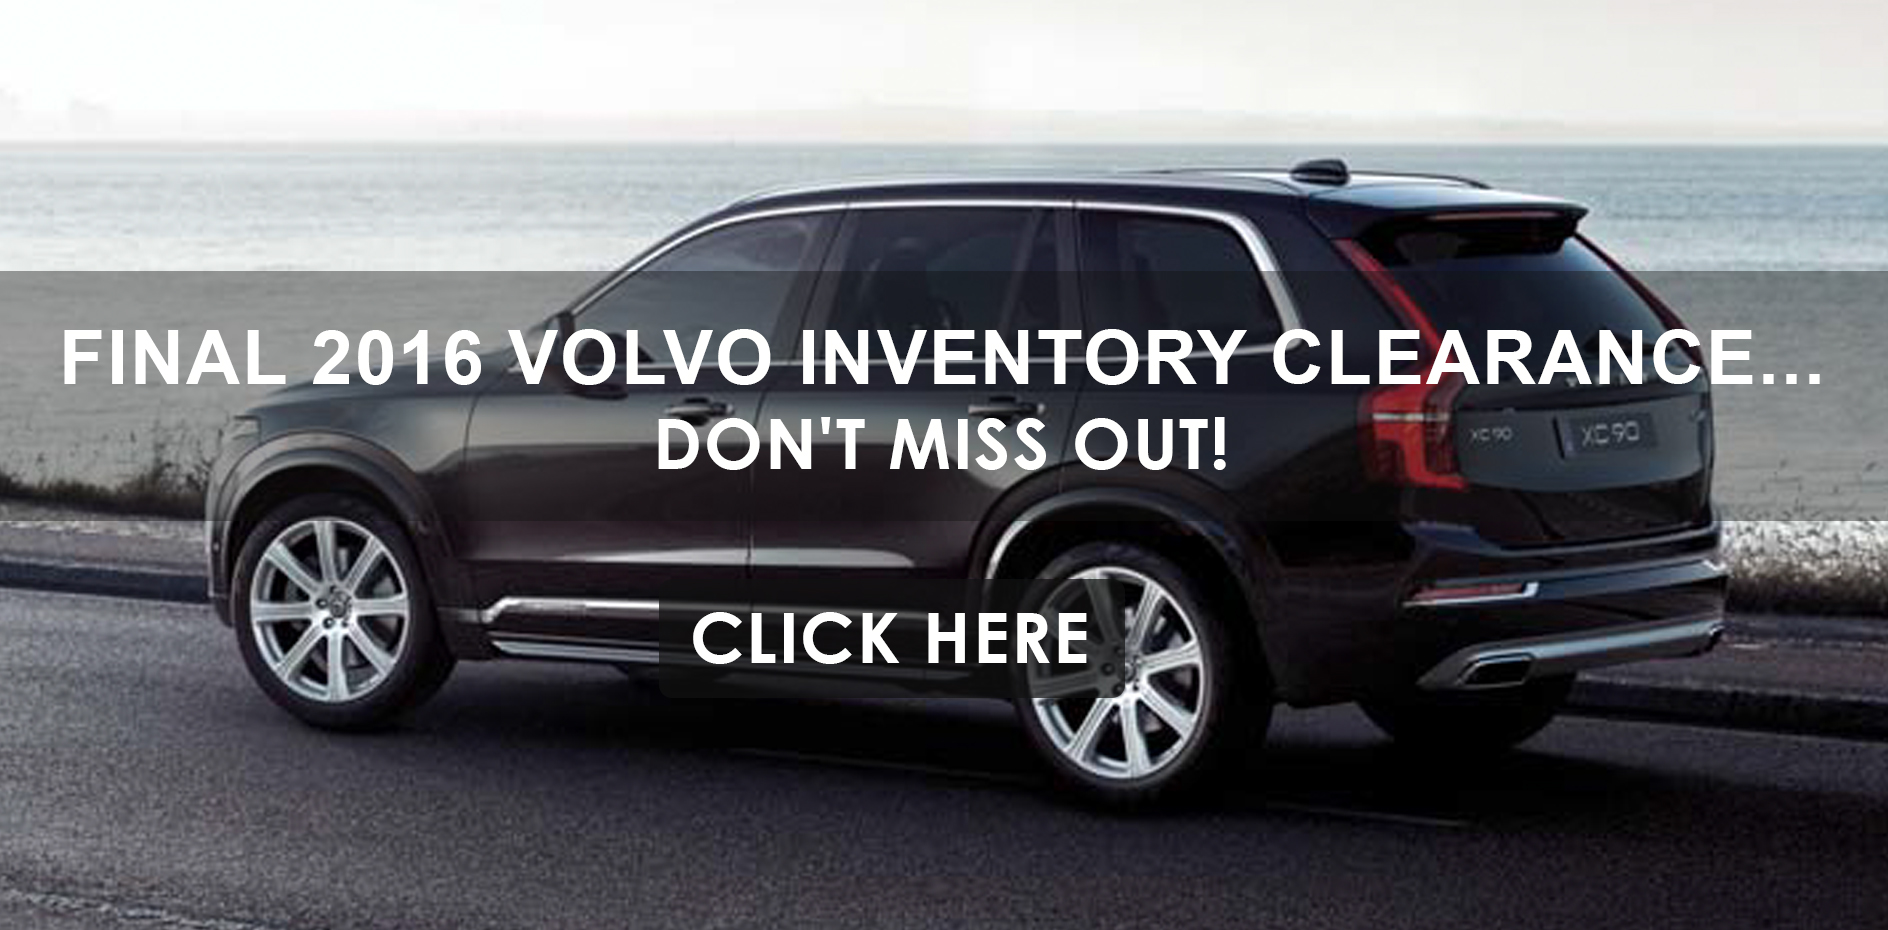 Final 2016 Volvo Inventory Clearance... Don't Miss Out!